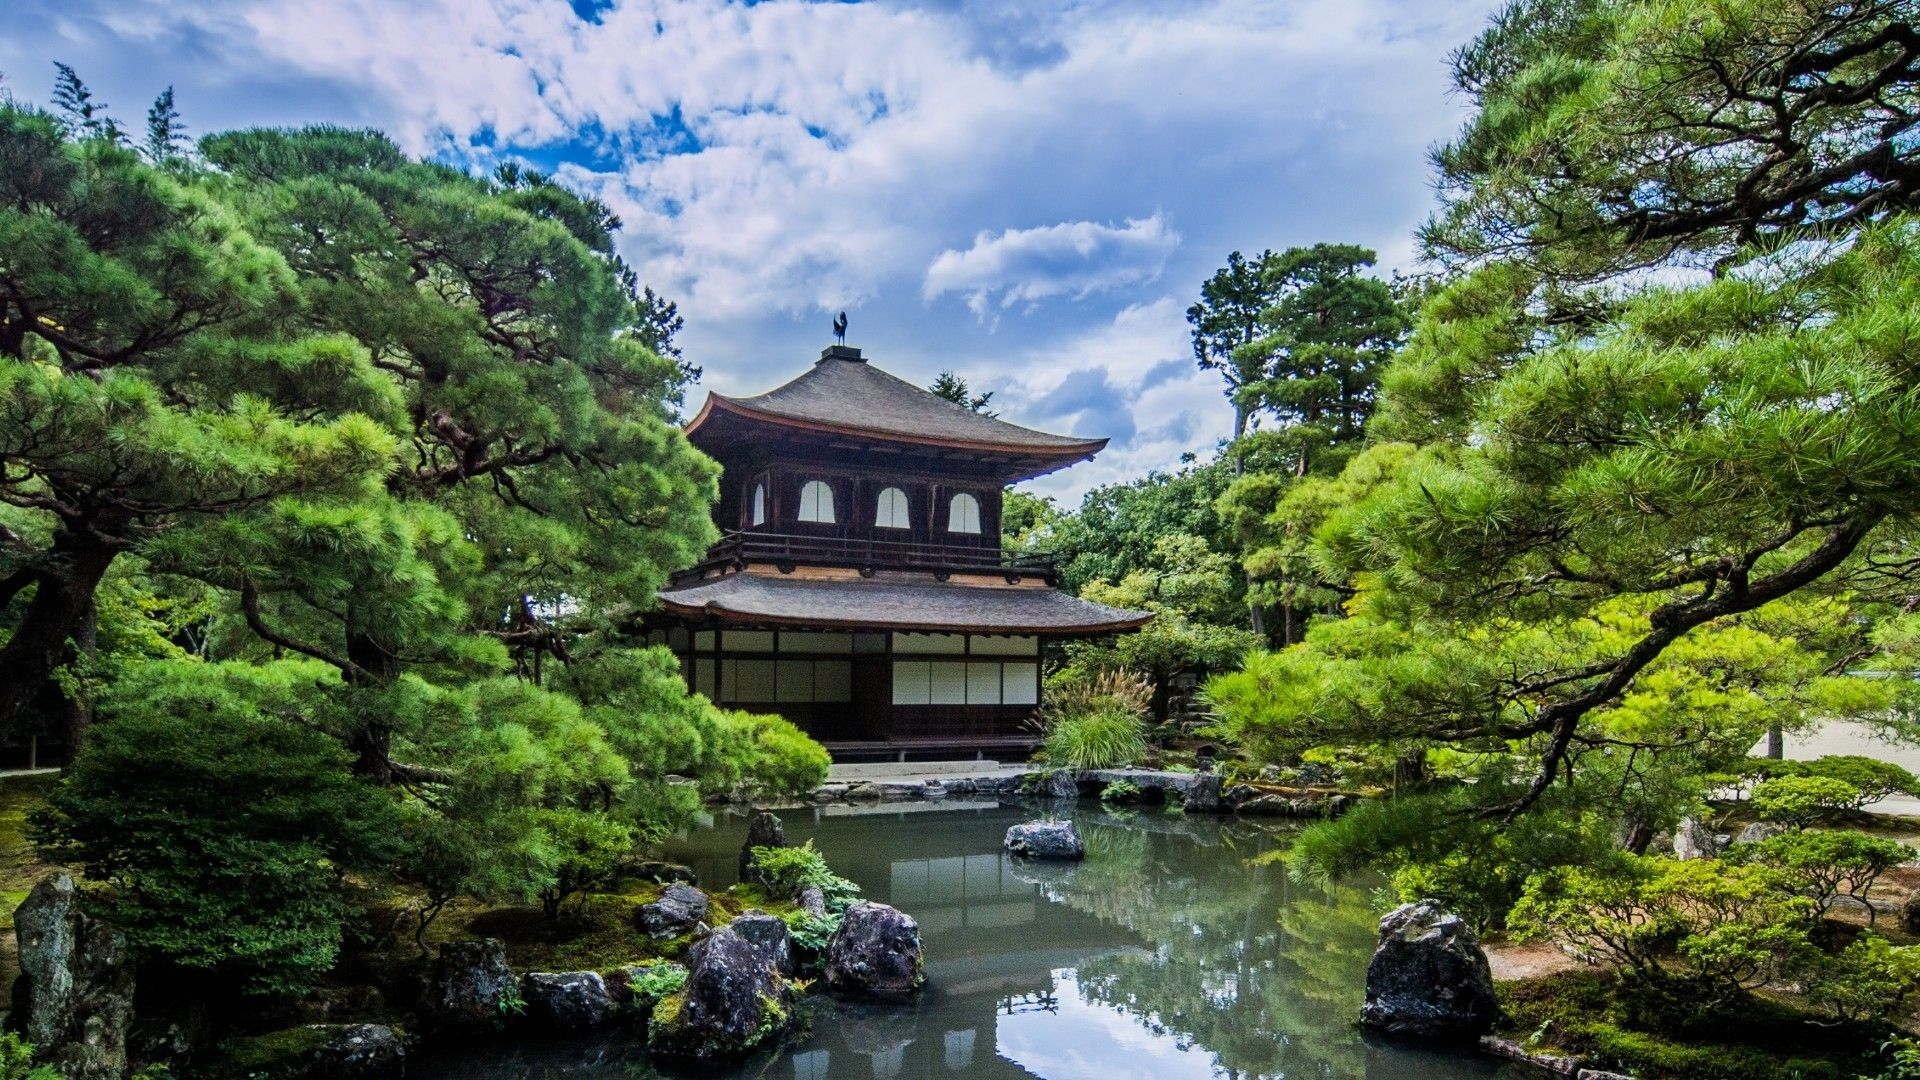 Zen Wallpaper 1920x1080: Zen Landscape Wallpapers